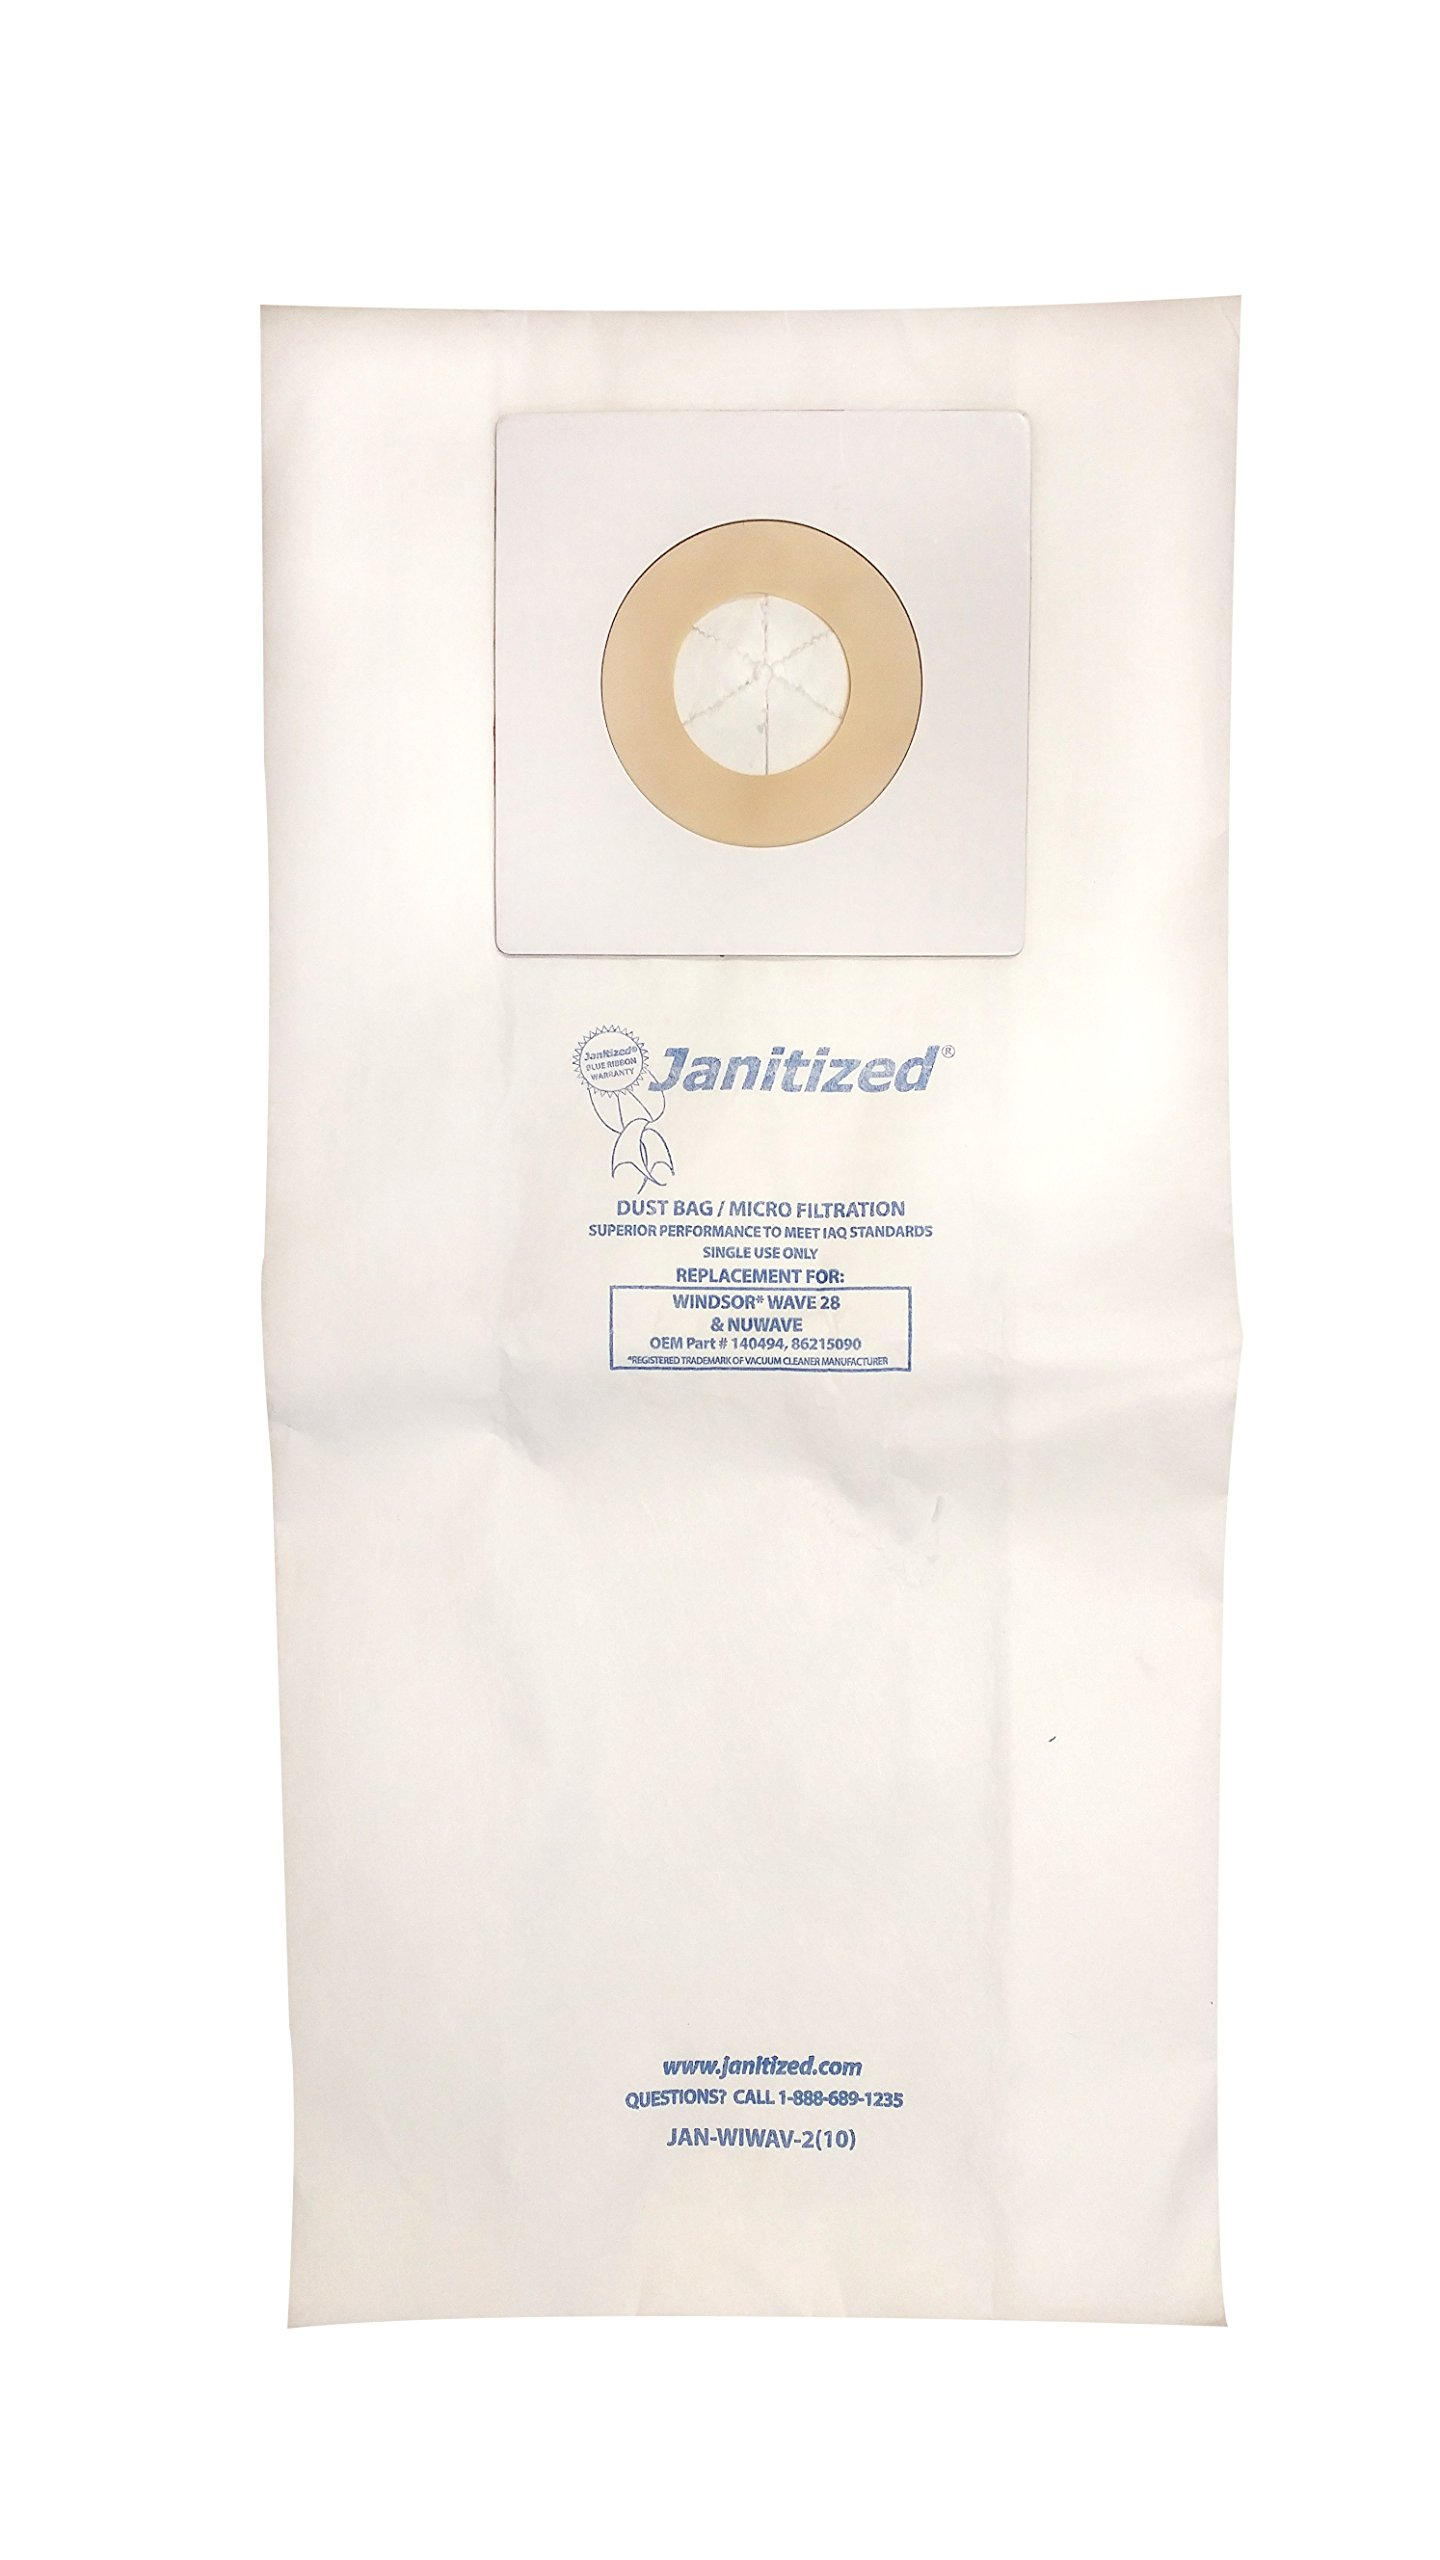 Janitized JAN-WIWAV-2(10) Premium Replacement Commercial Vacuum Paper Bag for Windsor Wave 28'', Vacuum Cleaners, OEM#140494, 86215090 (Pack of 10) by Janitized